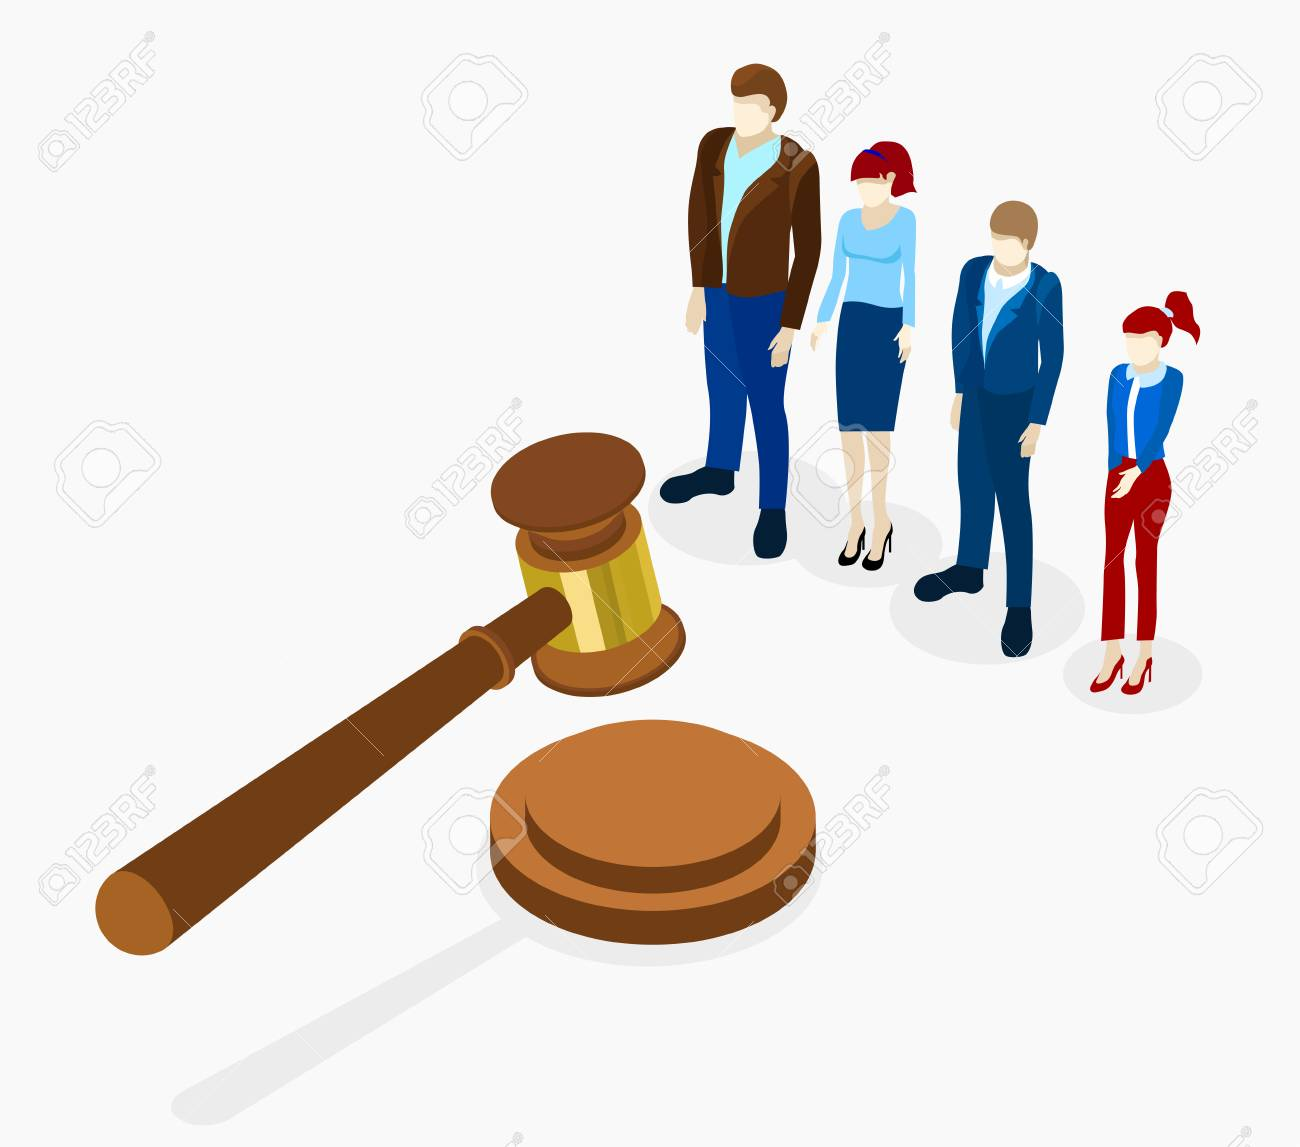 No corruption. Isometric illustration with gavel and people on white background. Vector 3d design. - 103981936